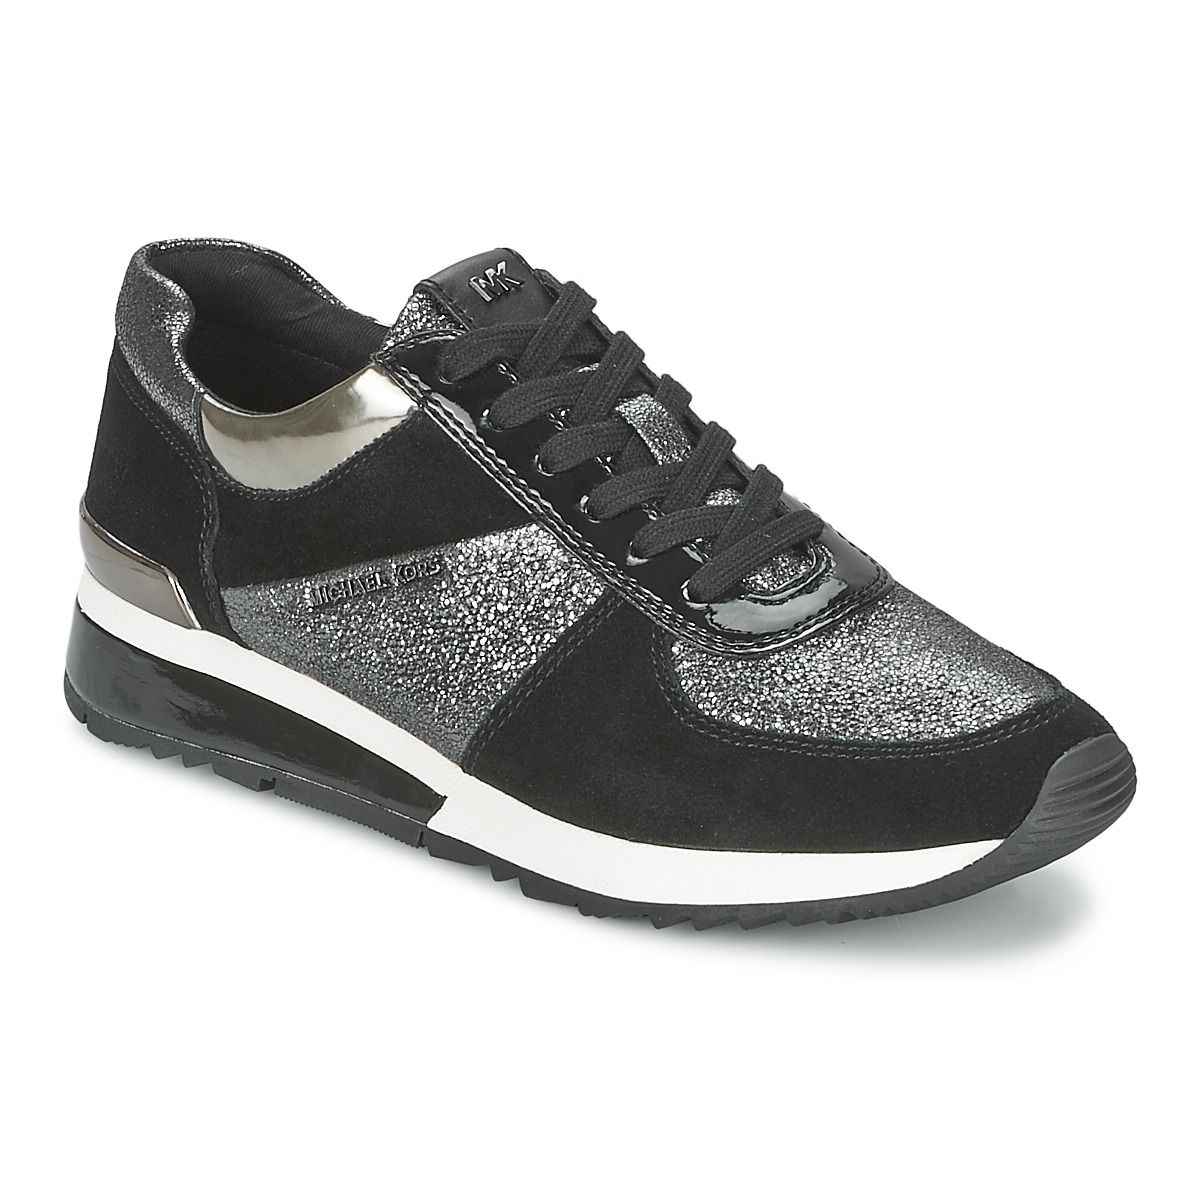 baskets basses michael michael kors allie wrap trainer noir argent prix promo baskets femme